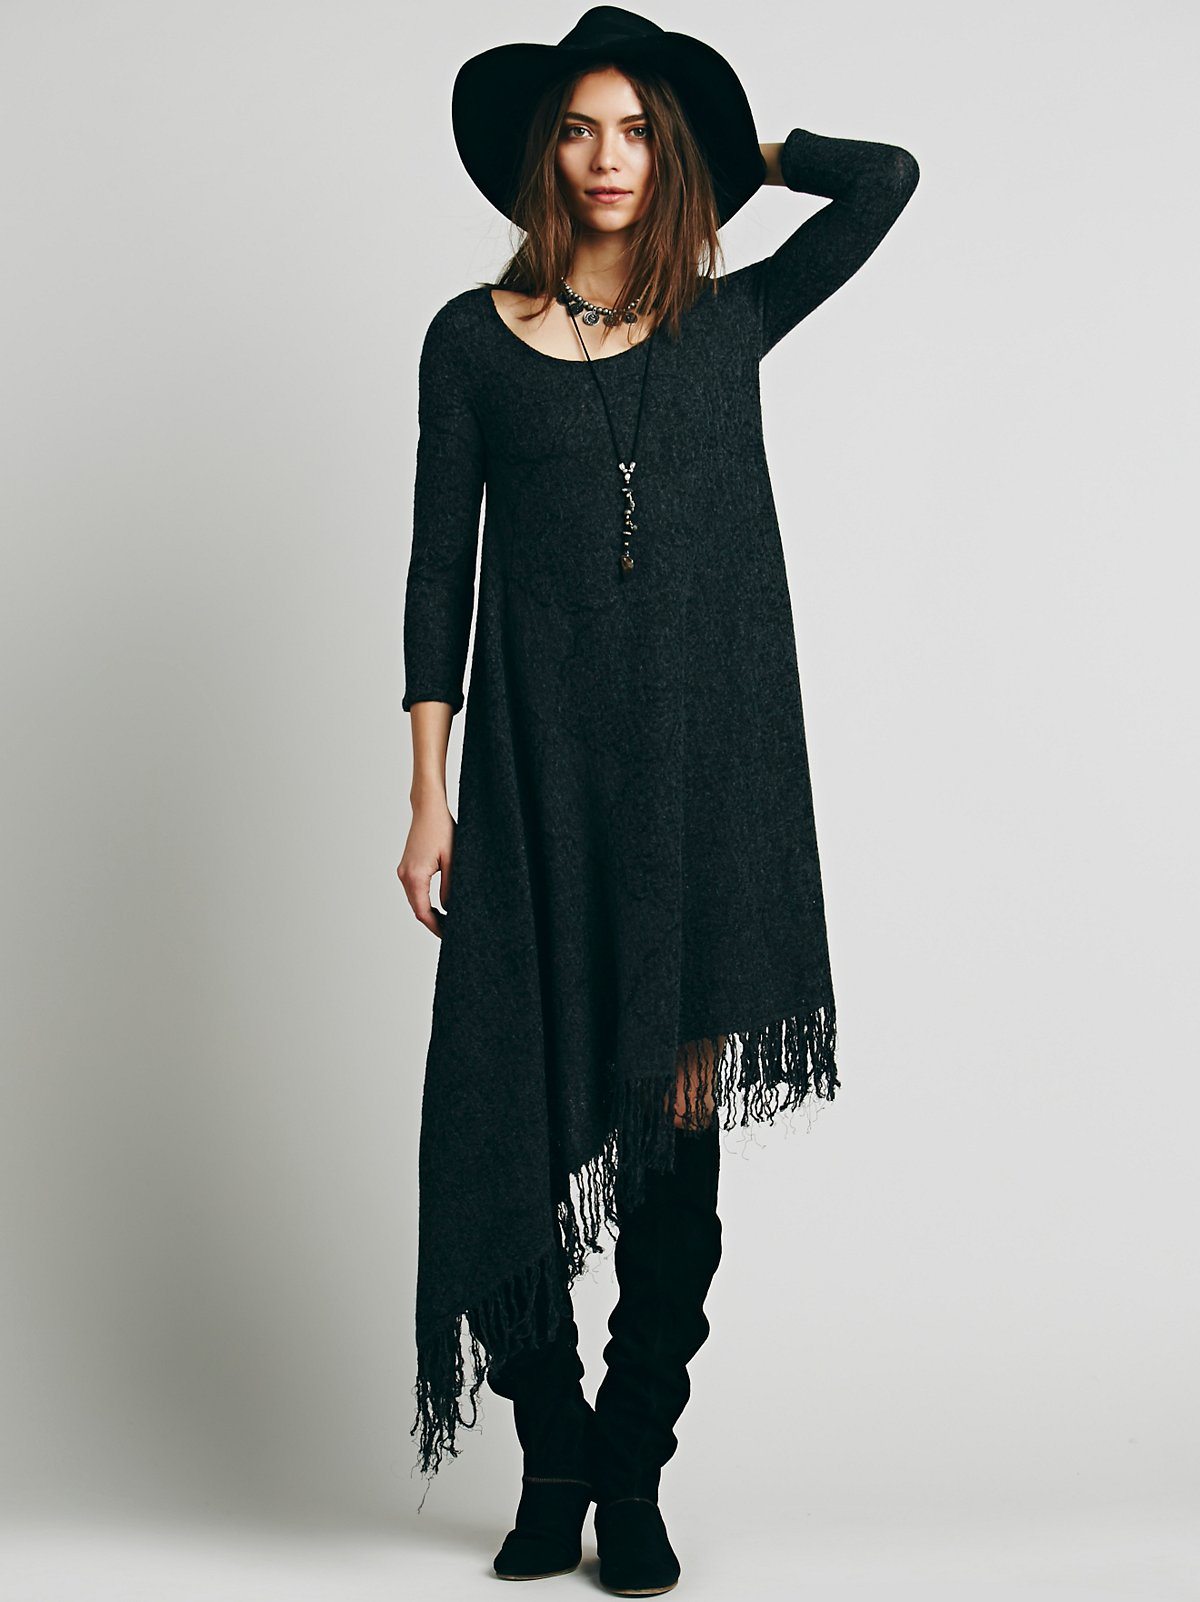 Moonbathe Maxi Dress